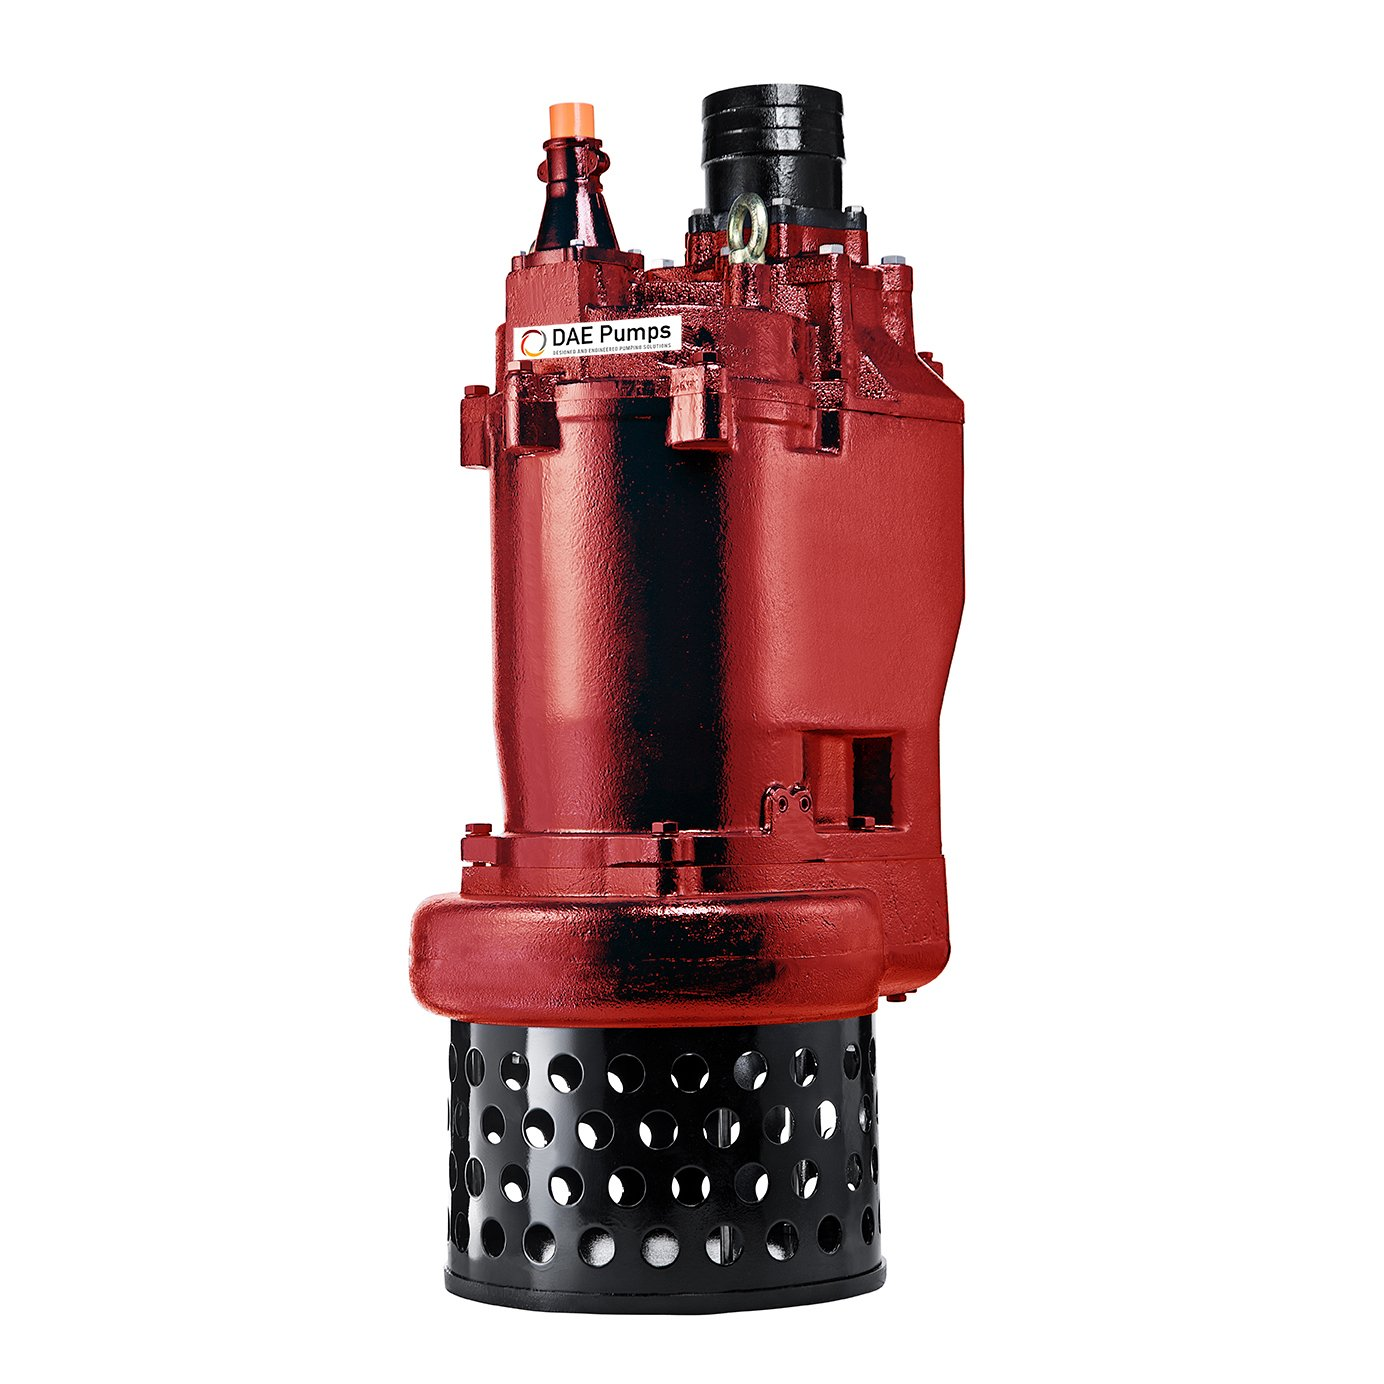 DAE Pumps 8220-S Submersible Slurry Pump